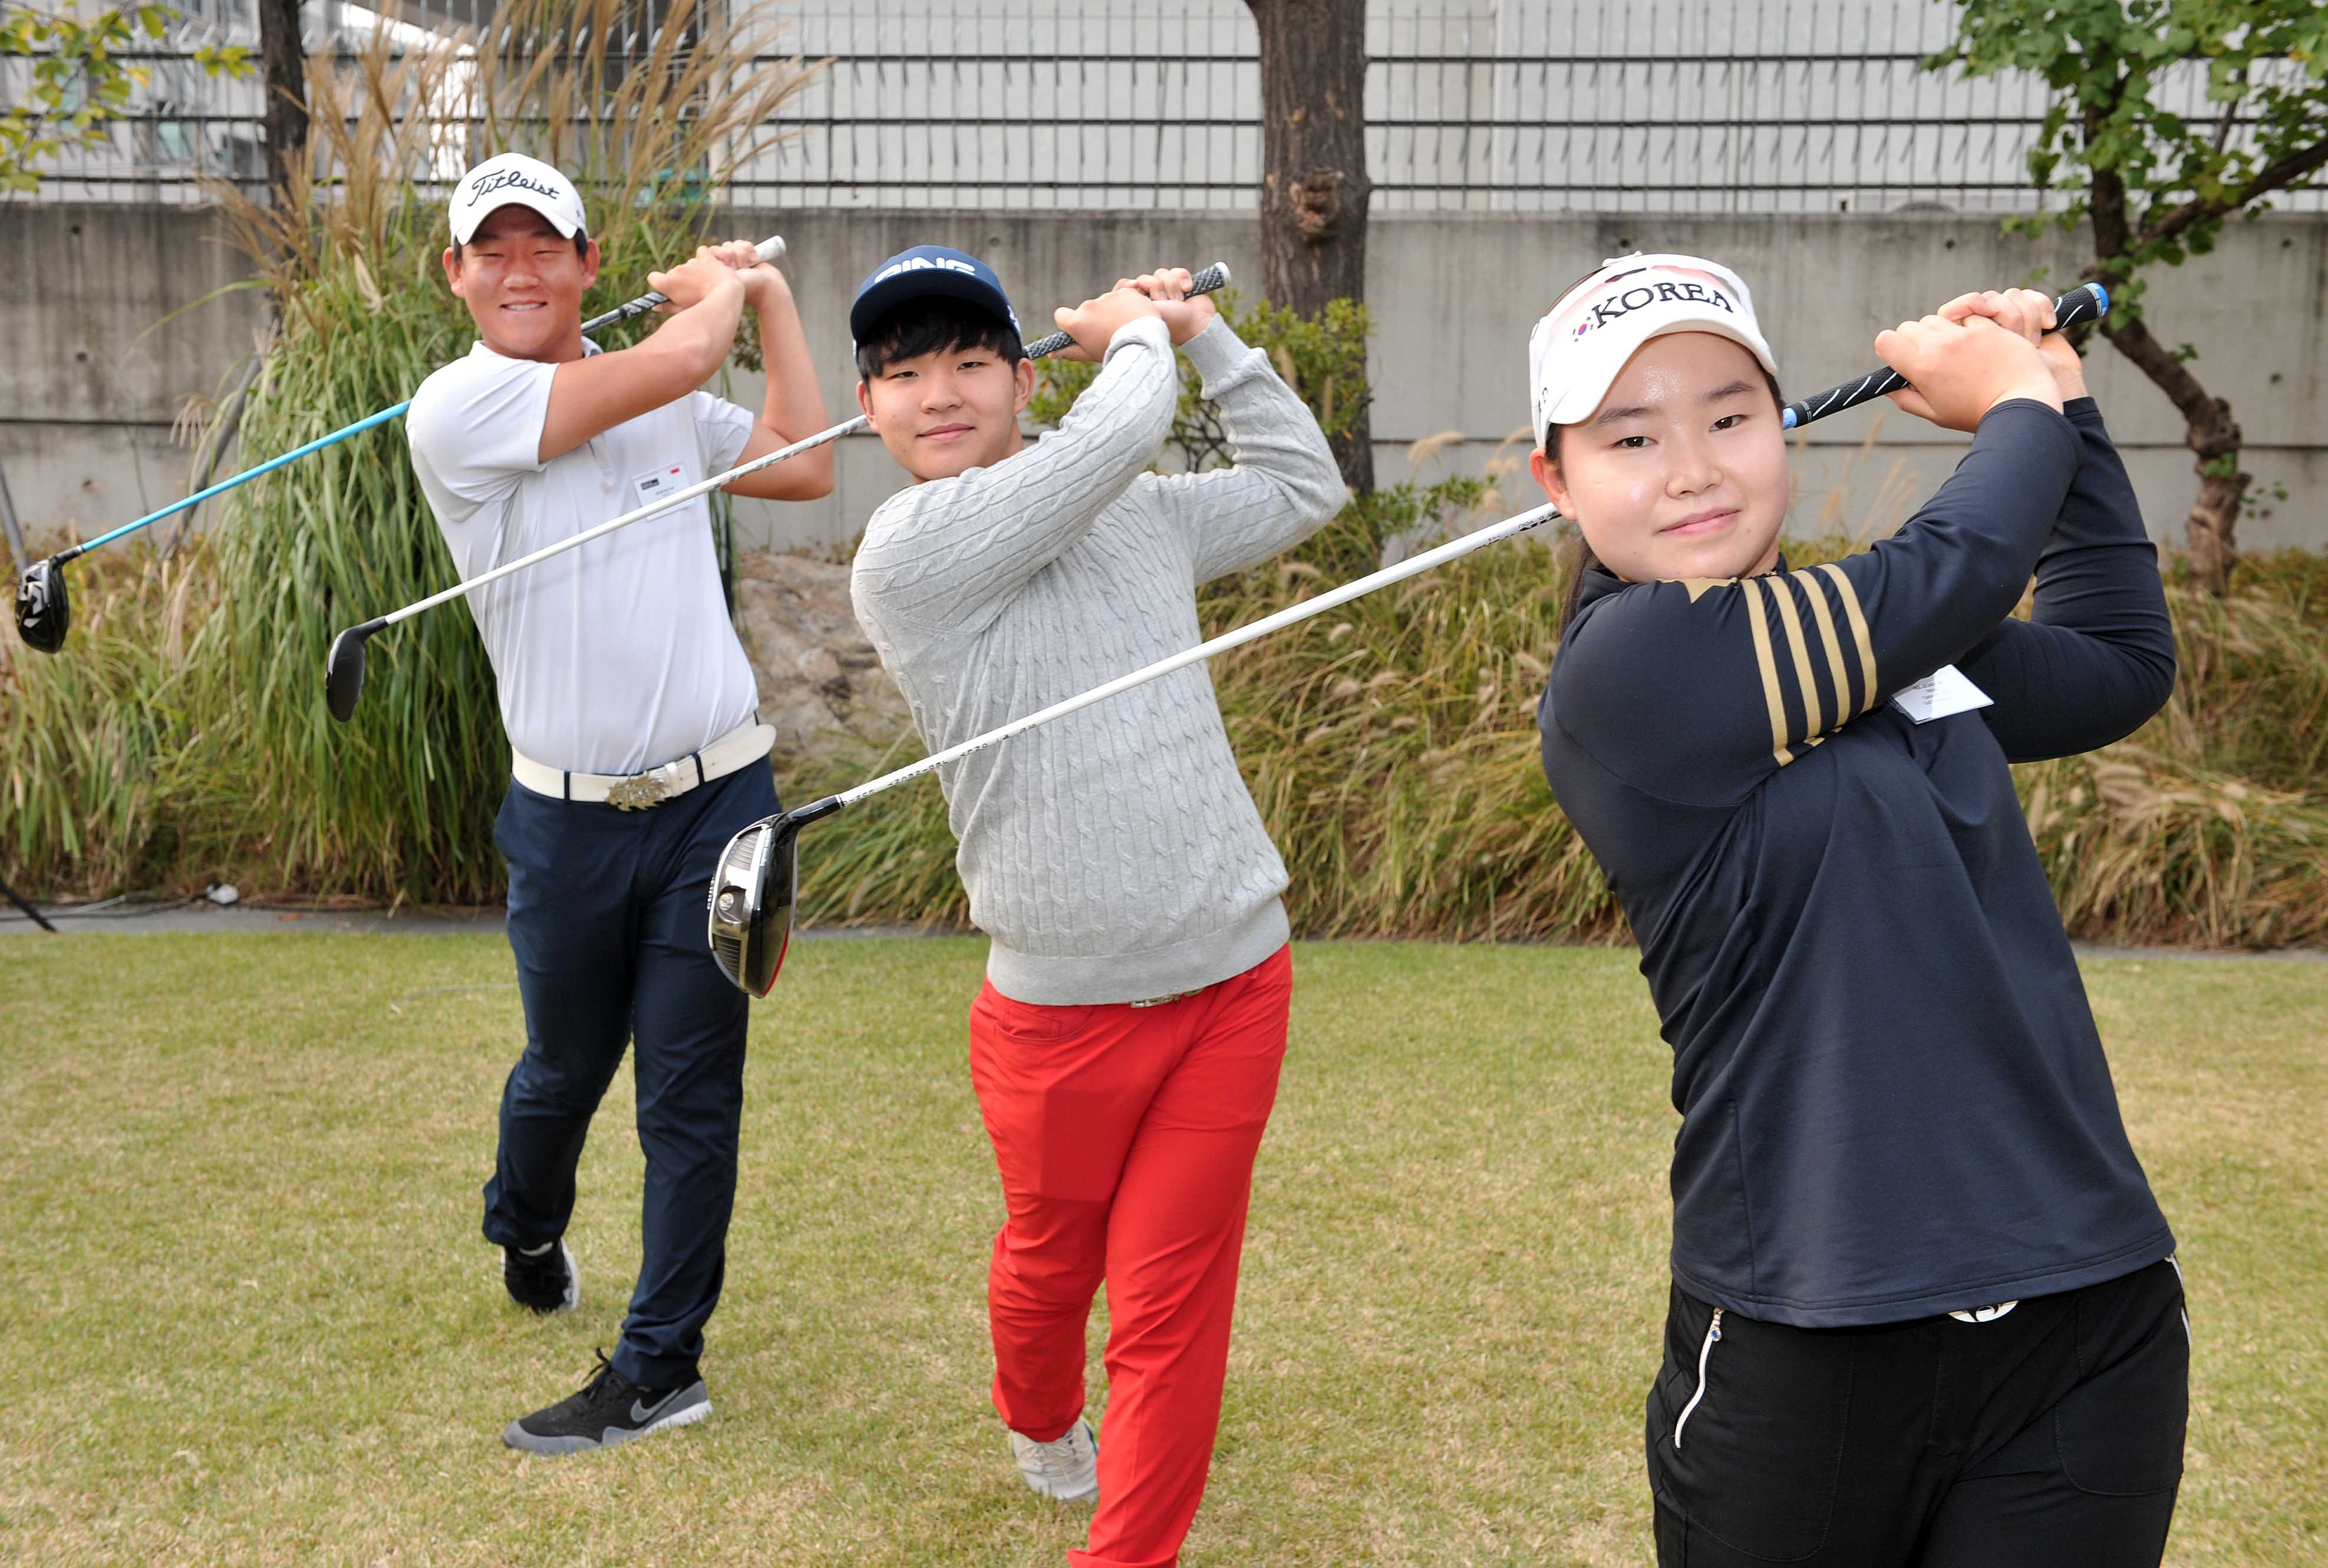 Three recipients of the Game On English-Golf scholarship take a golf swing for a photo shoot on Oct. 19 at the Embassy of New Zealand in Seoul. Golf scholarship recipients will participate in a new edu-sport program combining golf and English.